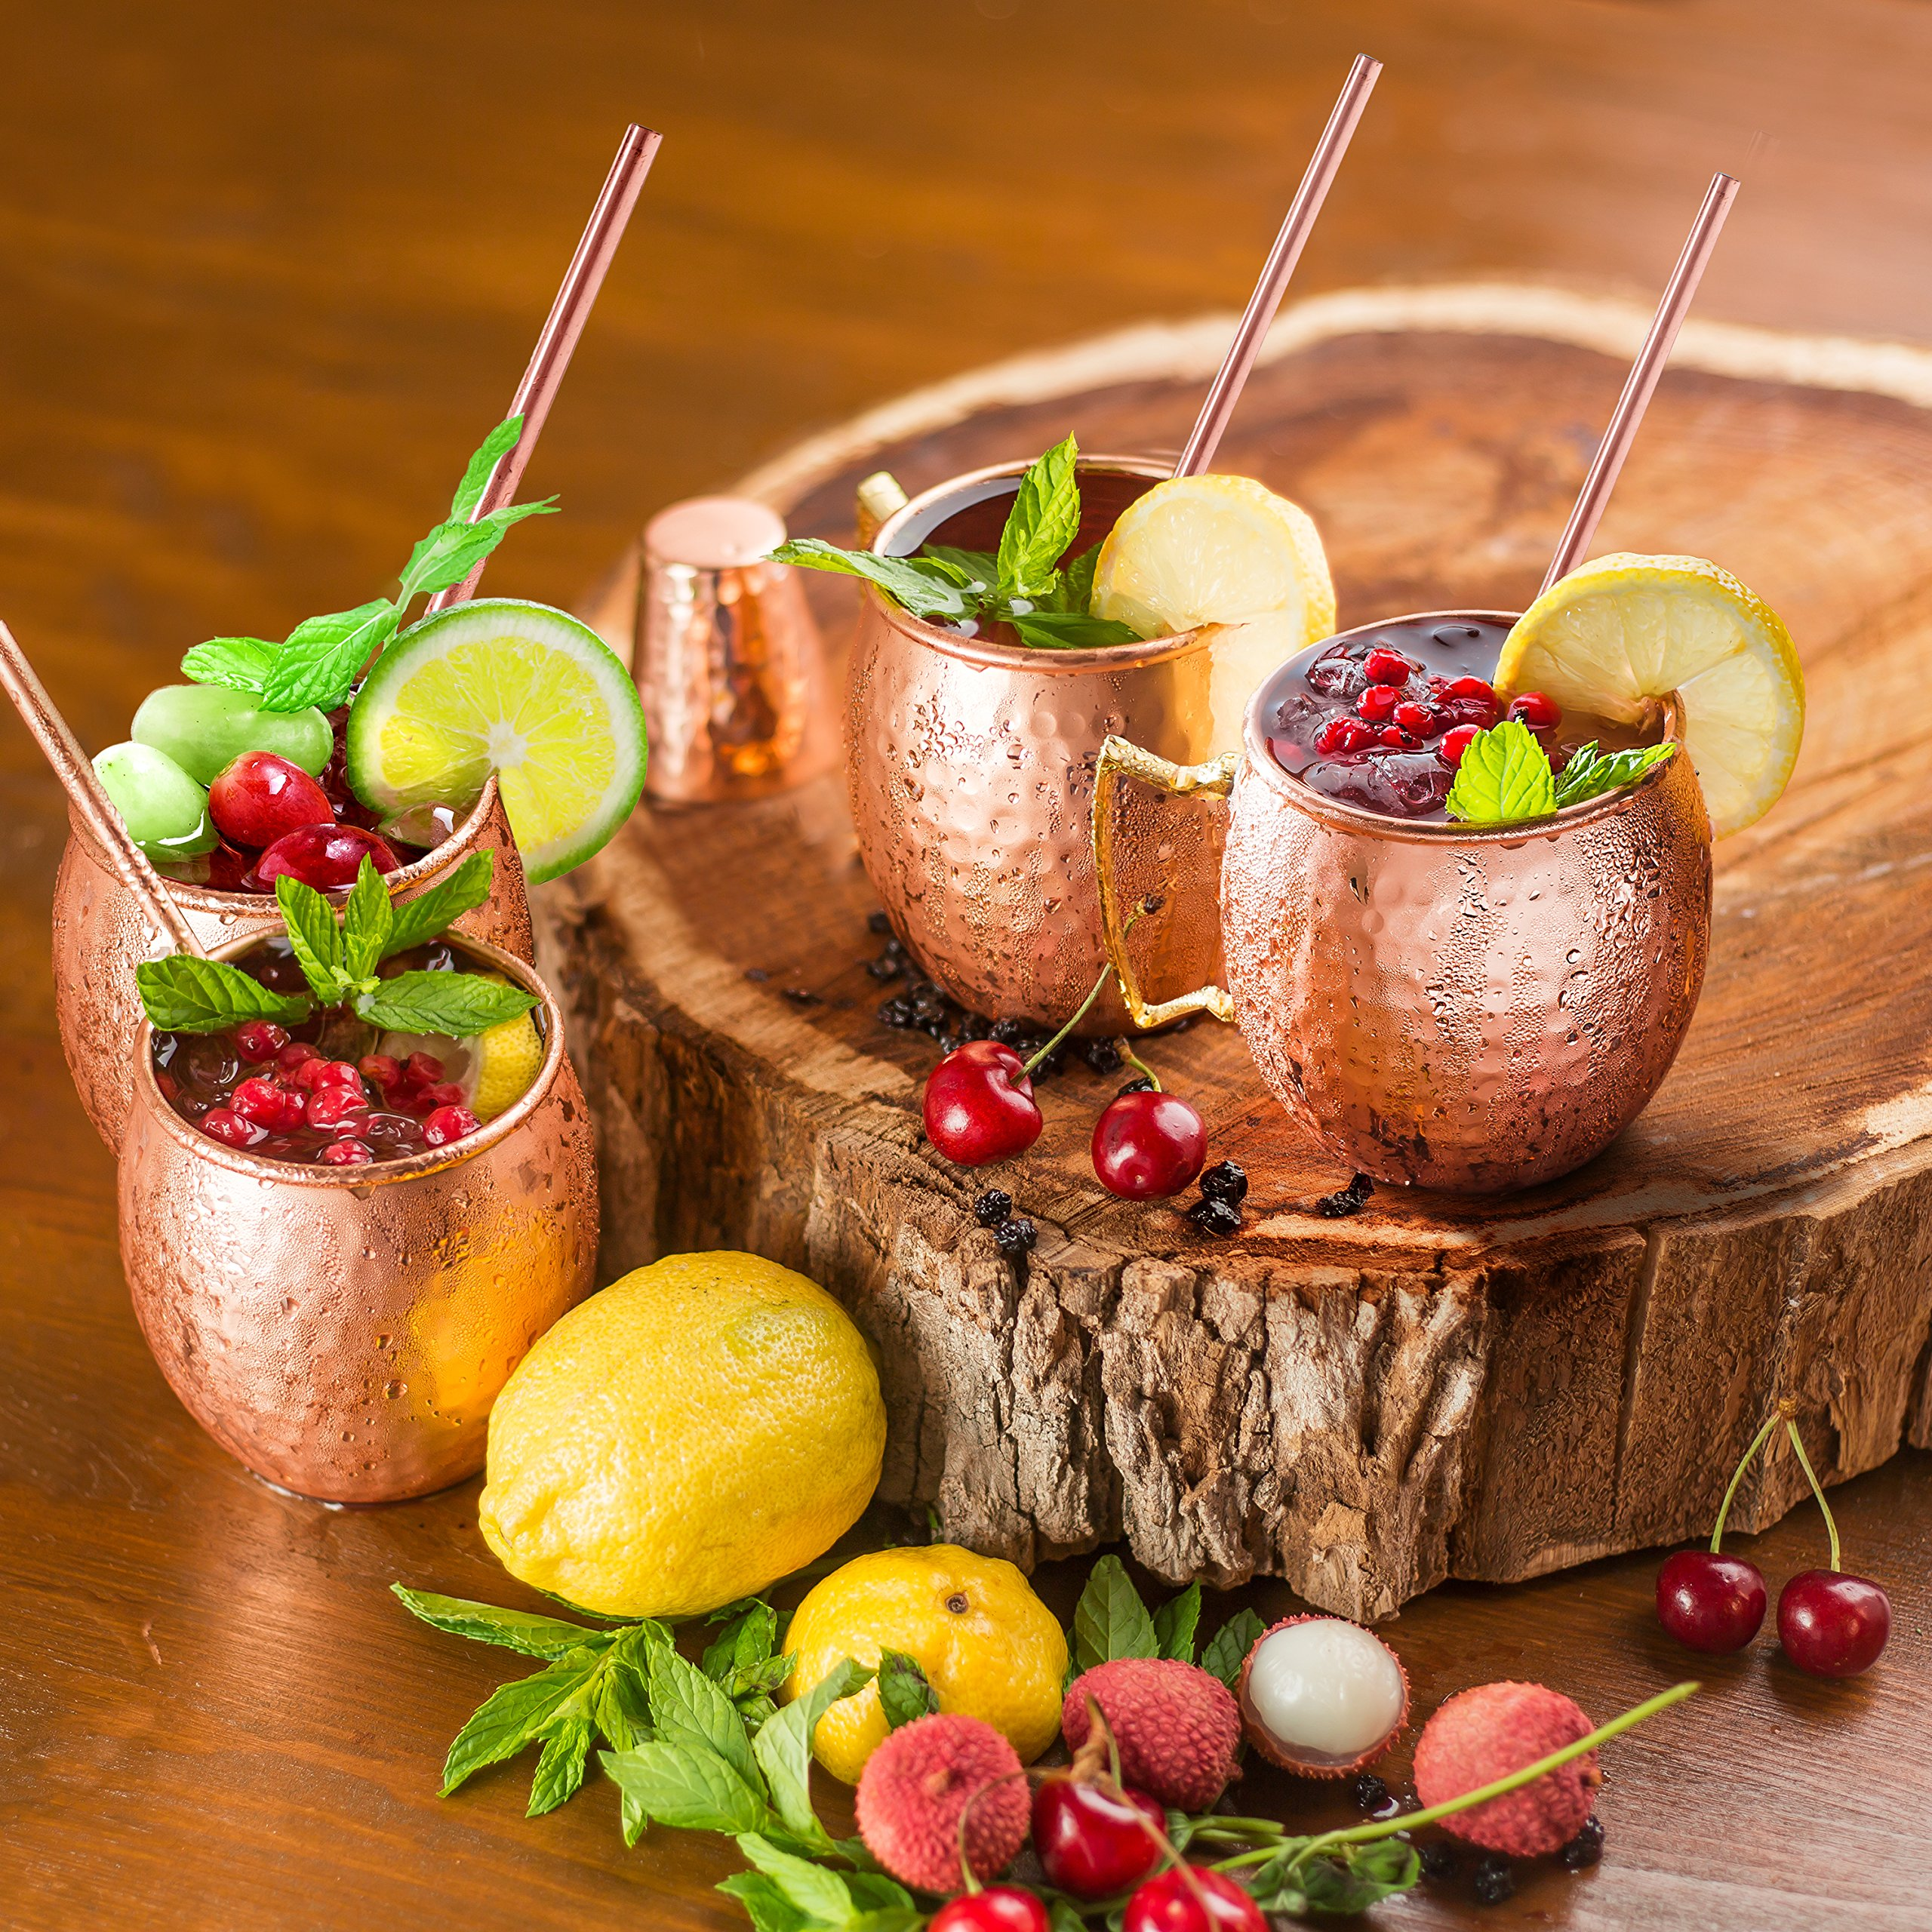 Moscow Mule Mugs 100% Solid Copper, Hammered, Gift Set of 4, No Nickel - Food Safe, 16oz, BONUS: 4 Straws + 1 Shot Glass & 2 E-Books by Copper-Bar by Copper-Bar (Image #6)